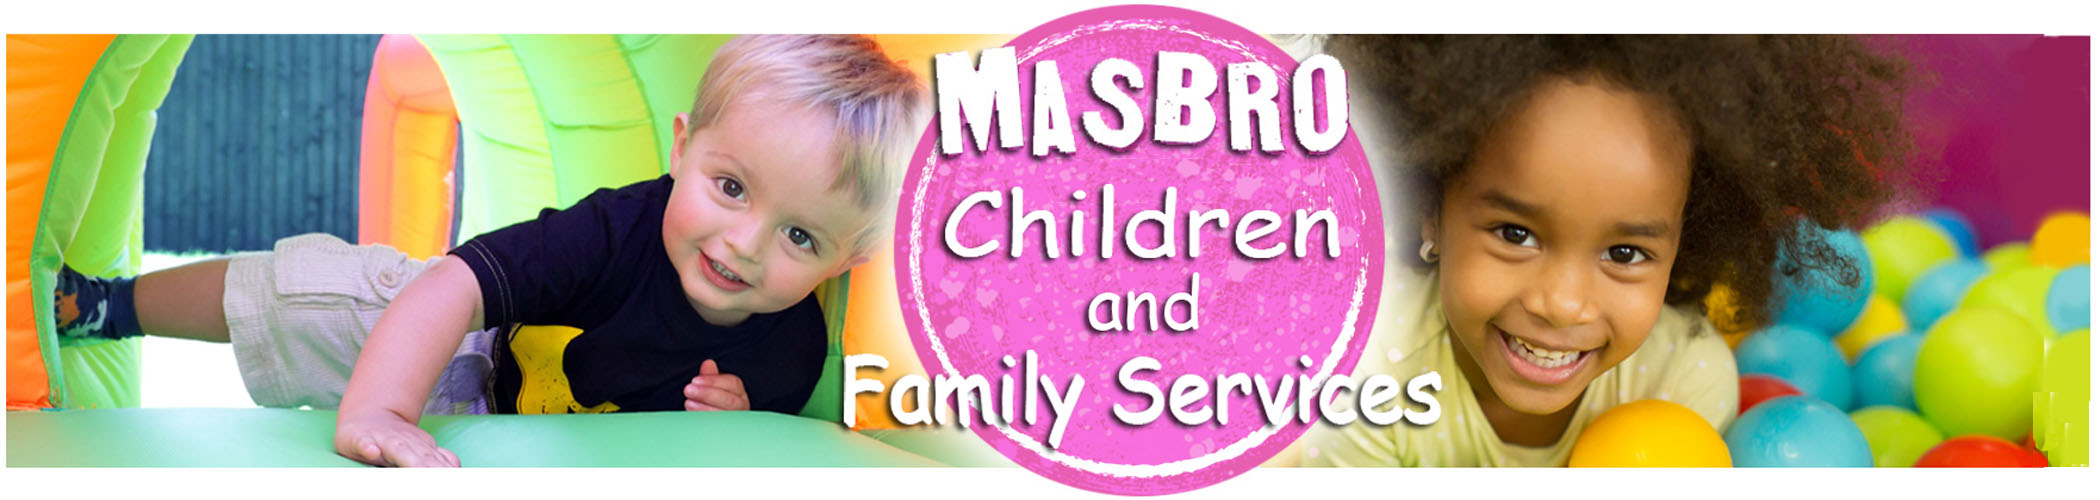 Masbro children and family services_banner 7